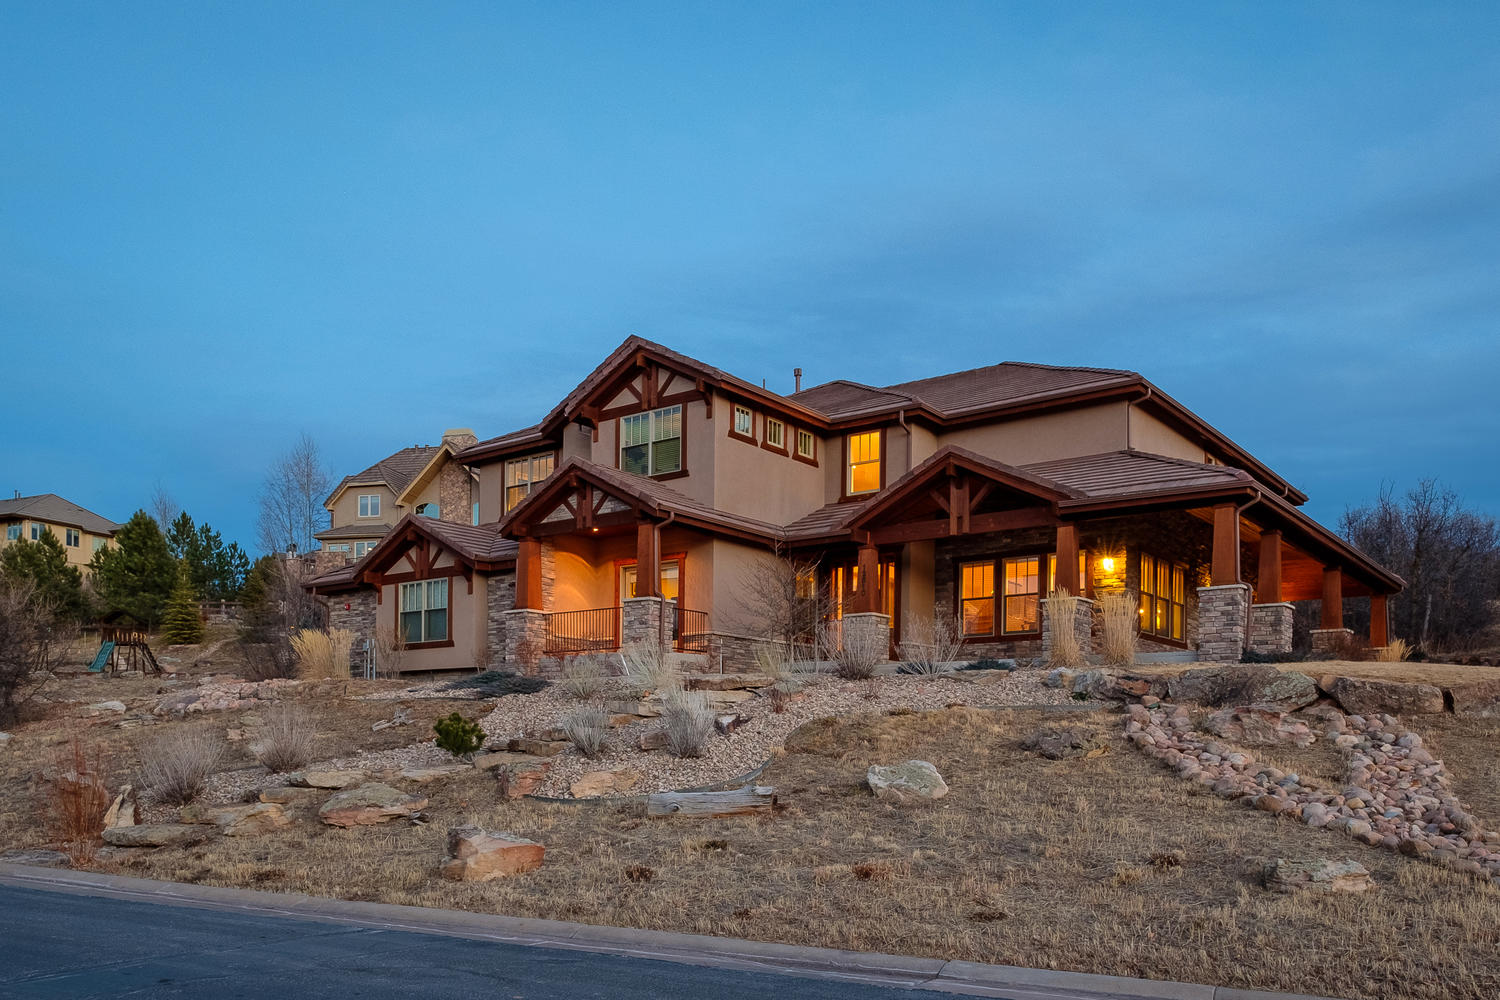 Single Family Home for Active at Whisper Canyon 12810 Horizon Trail Castle Pines, Colorado 80108 United States